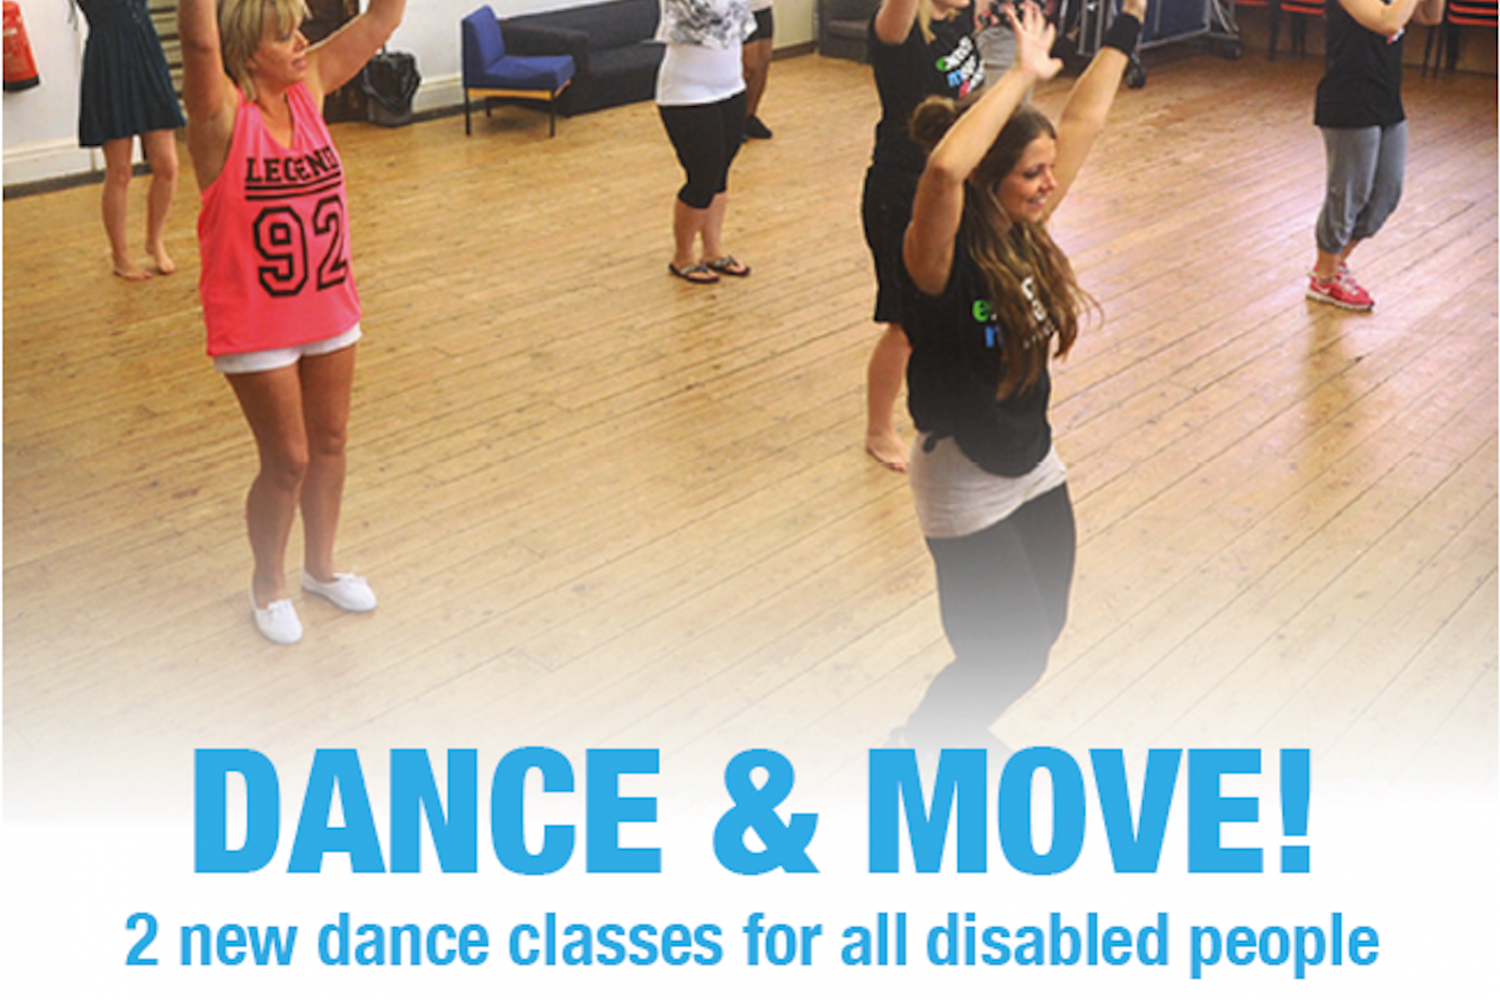 DSC Dance & Move! Inclusive Dance sessions for all disabled people